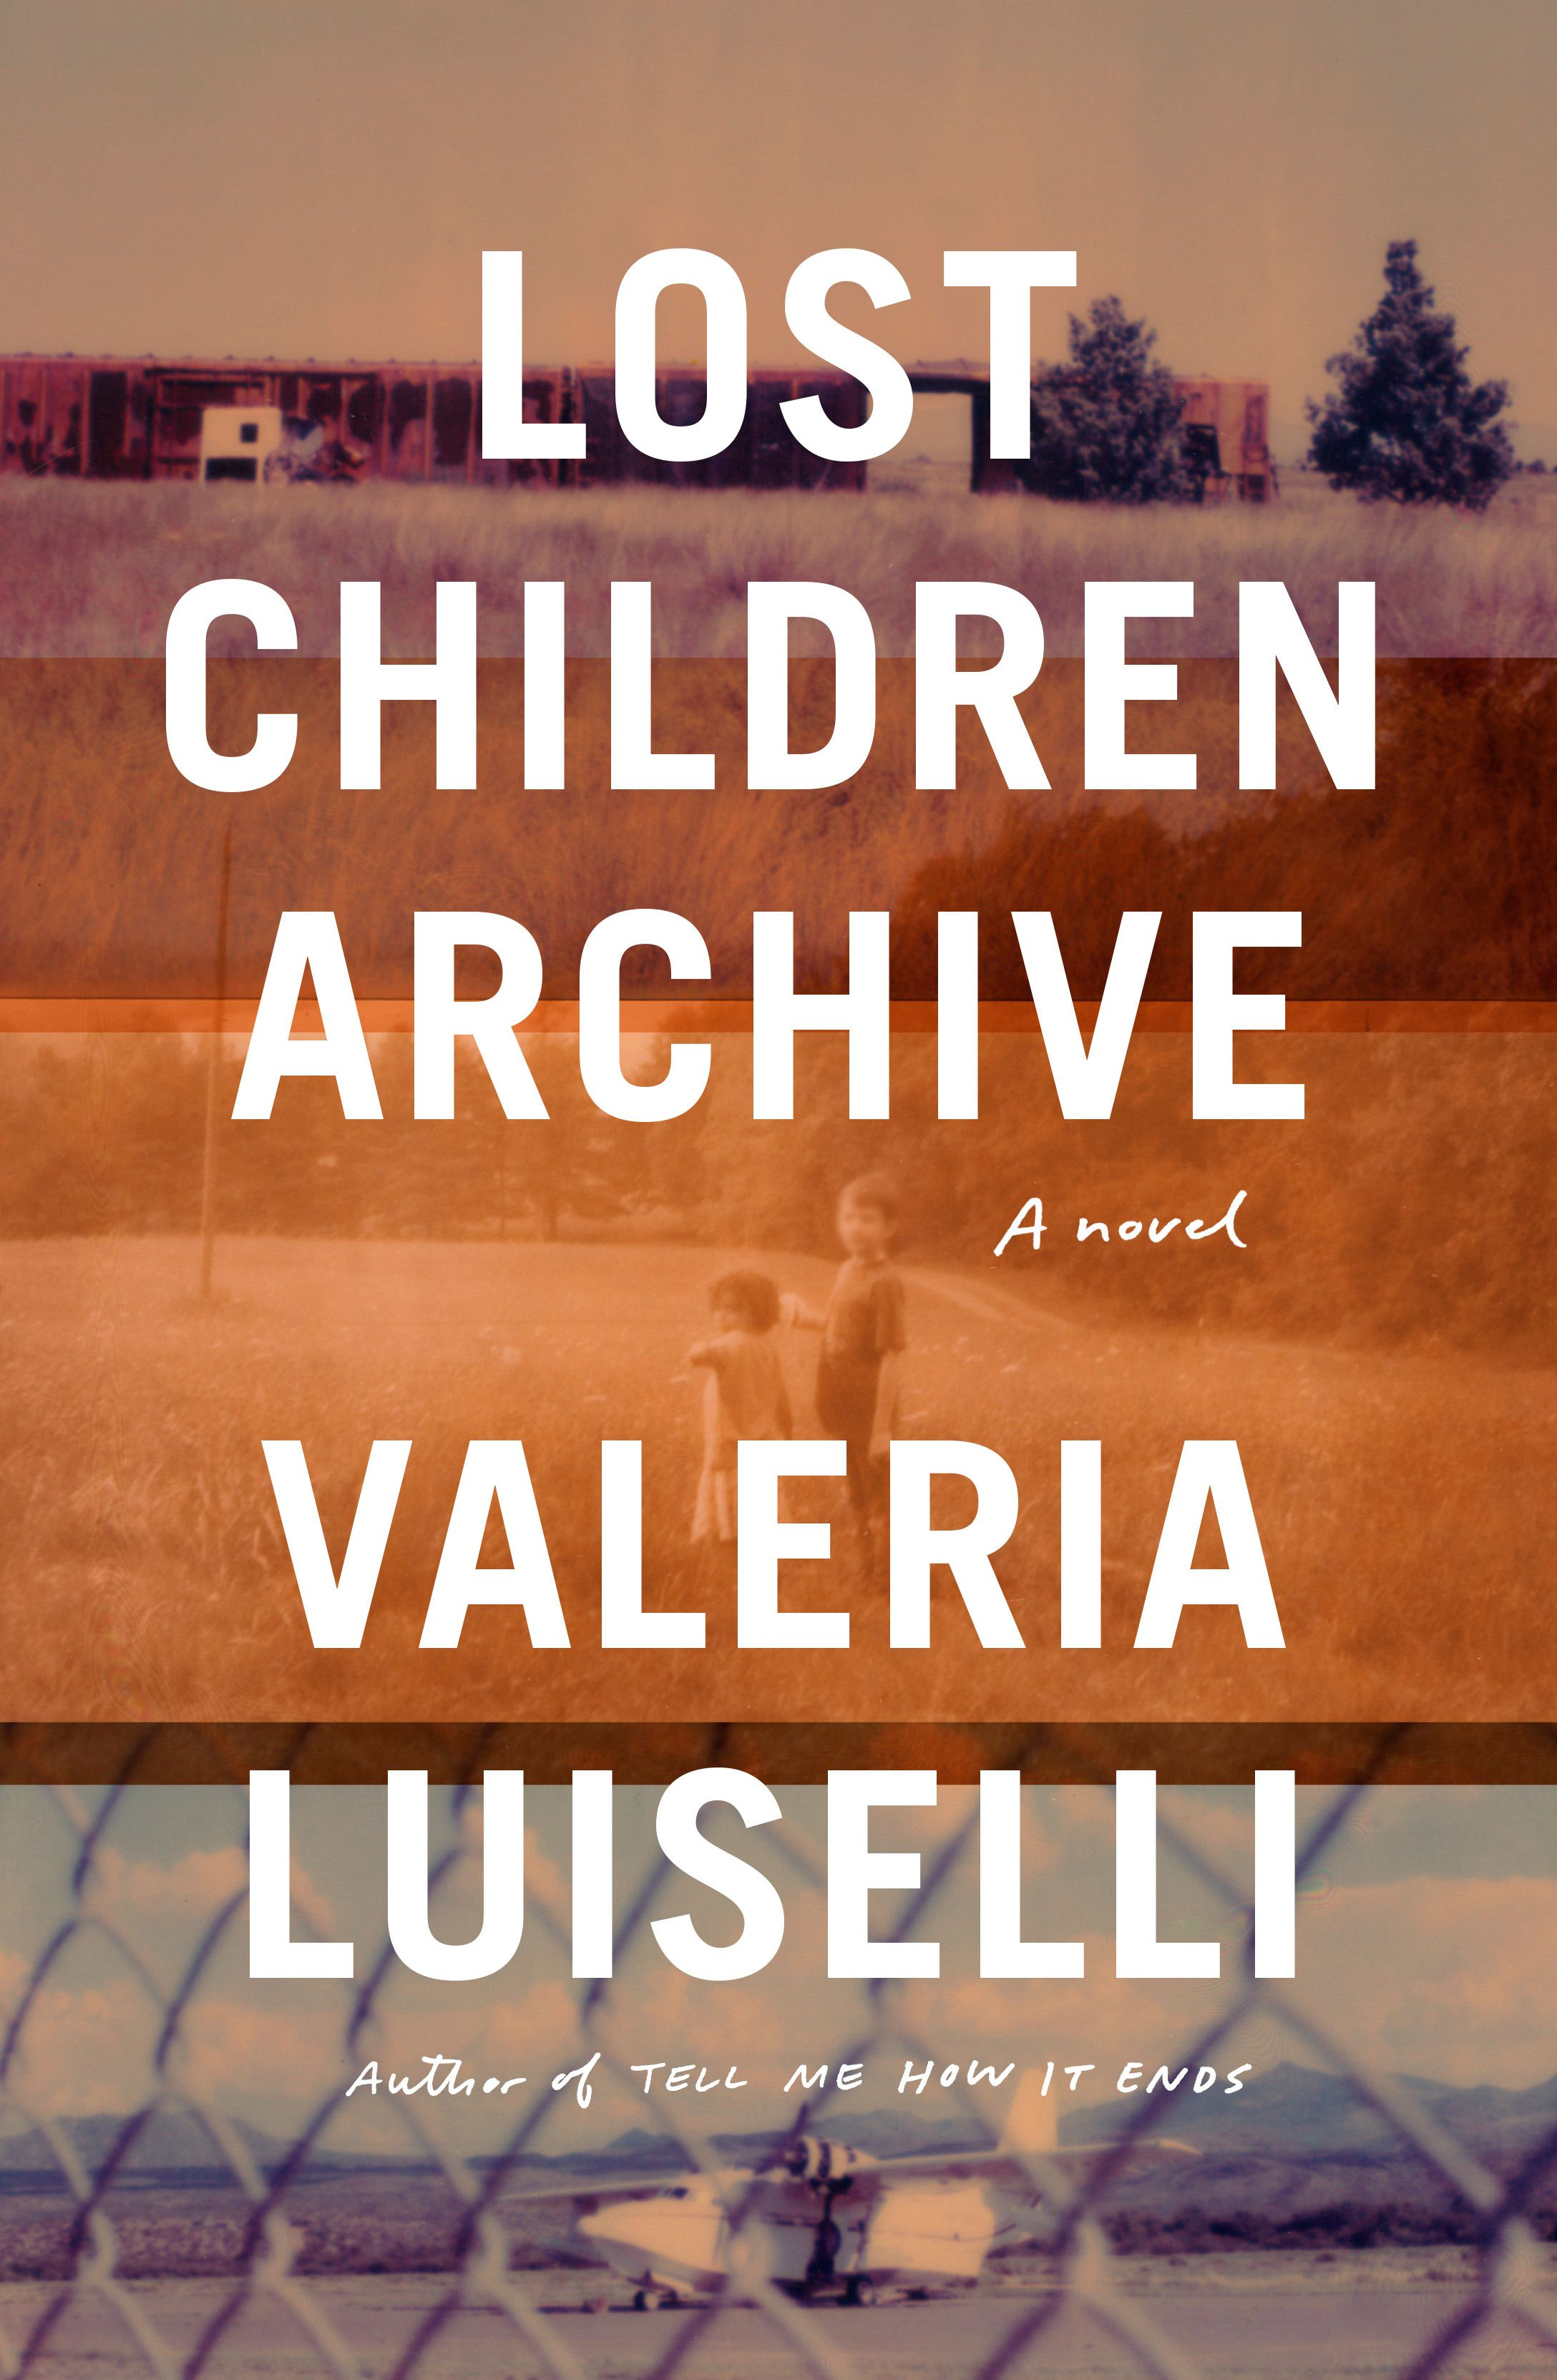 Lost children archive - This one sounds very cool. Told through the voices of the mother and son along with collected texts and images. It explores how we document experiences through the journey of this family going on a summer road trip across America.